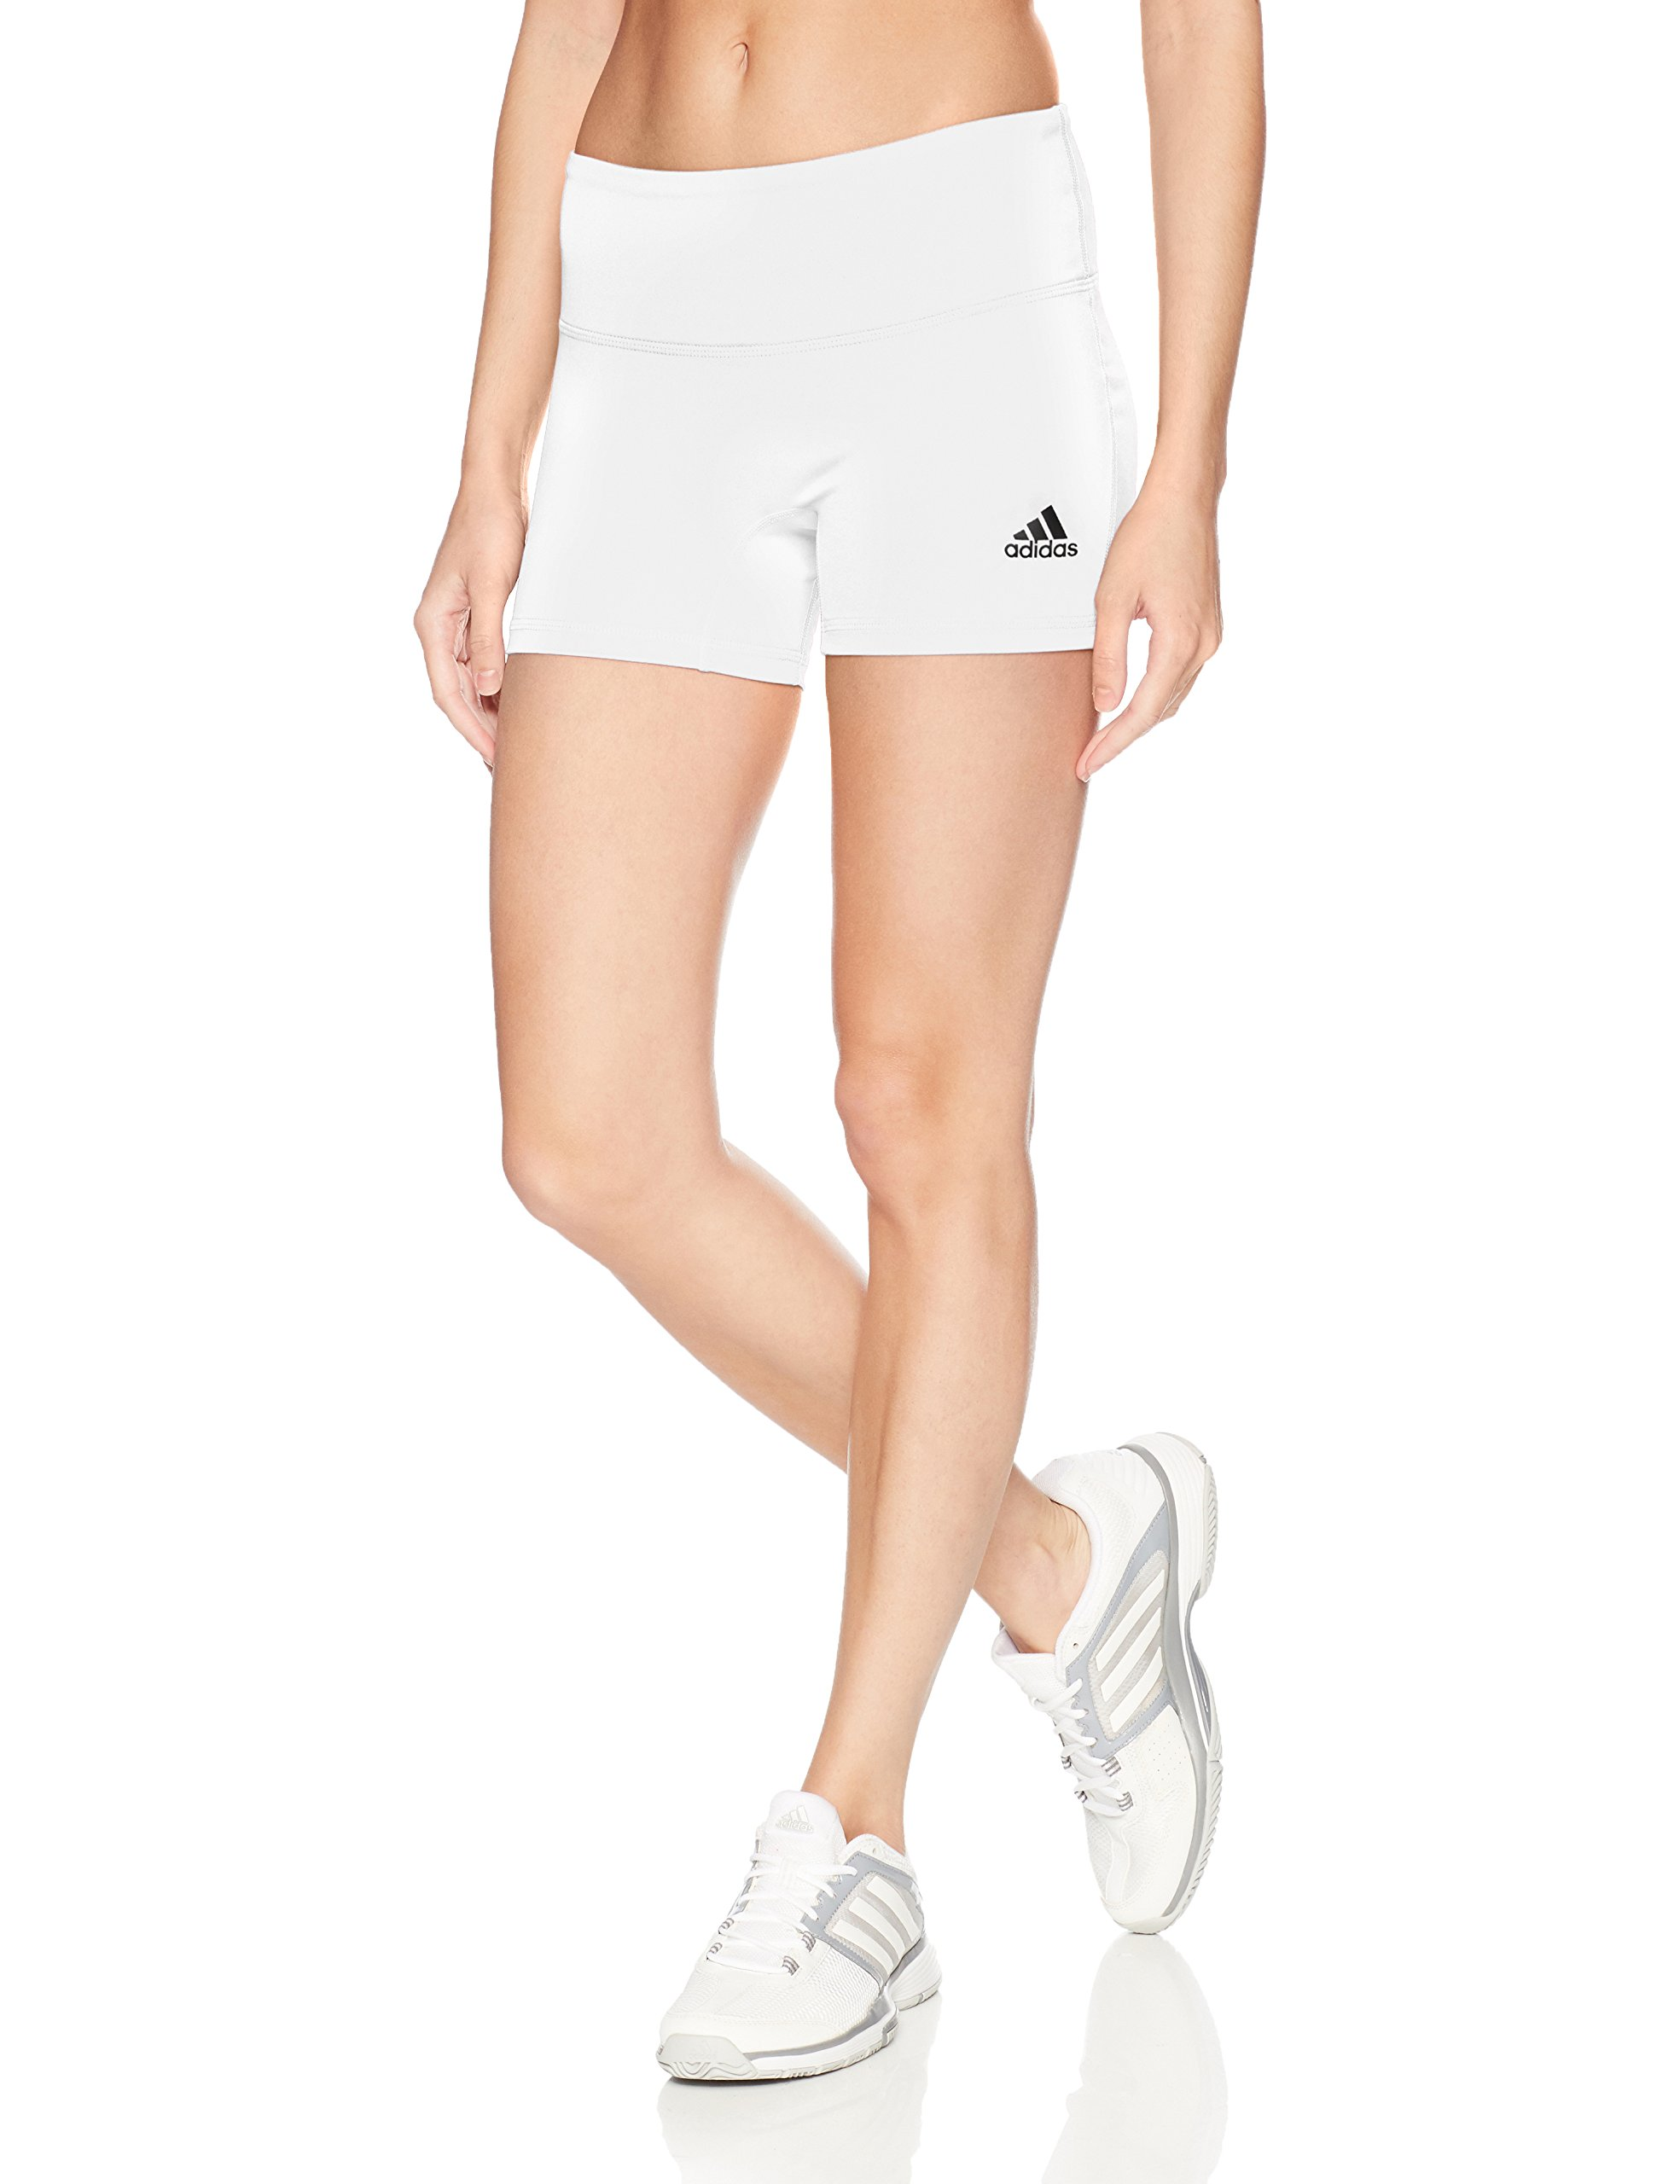 adidas Women's 4 Inch Short Tight, White, XX-Small by adidas